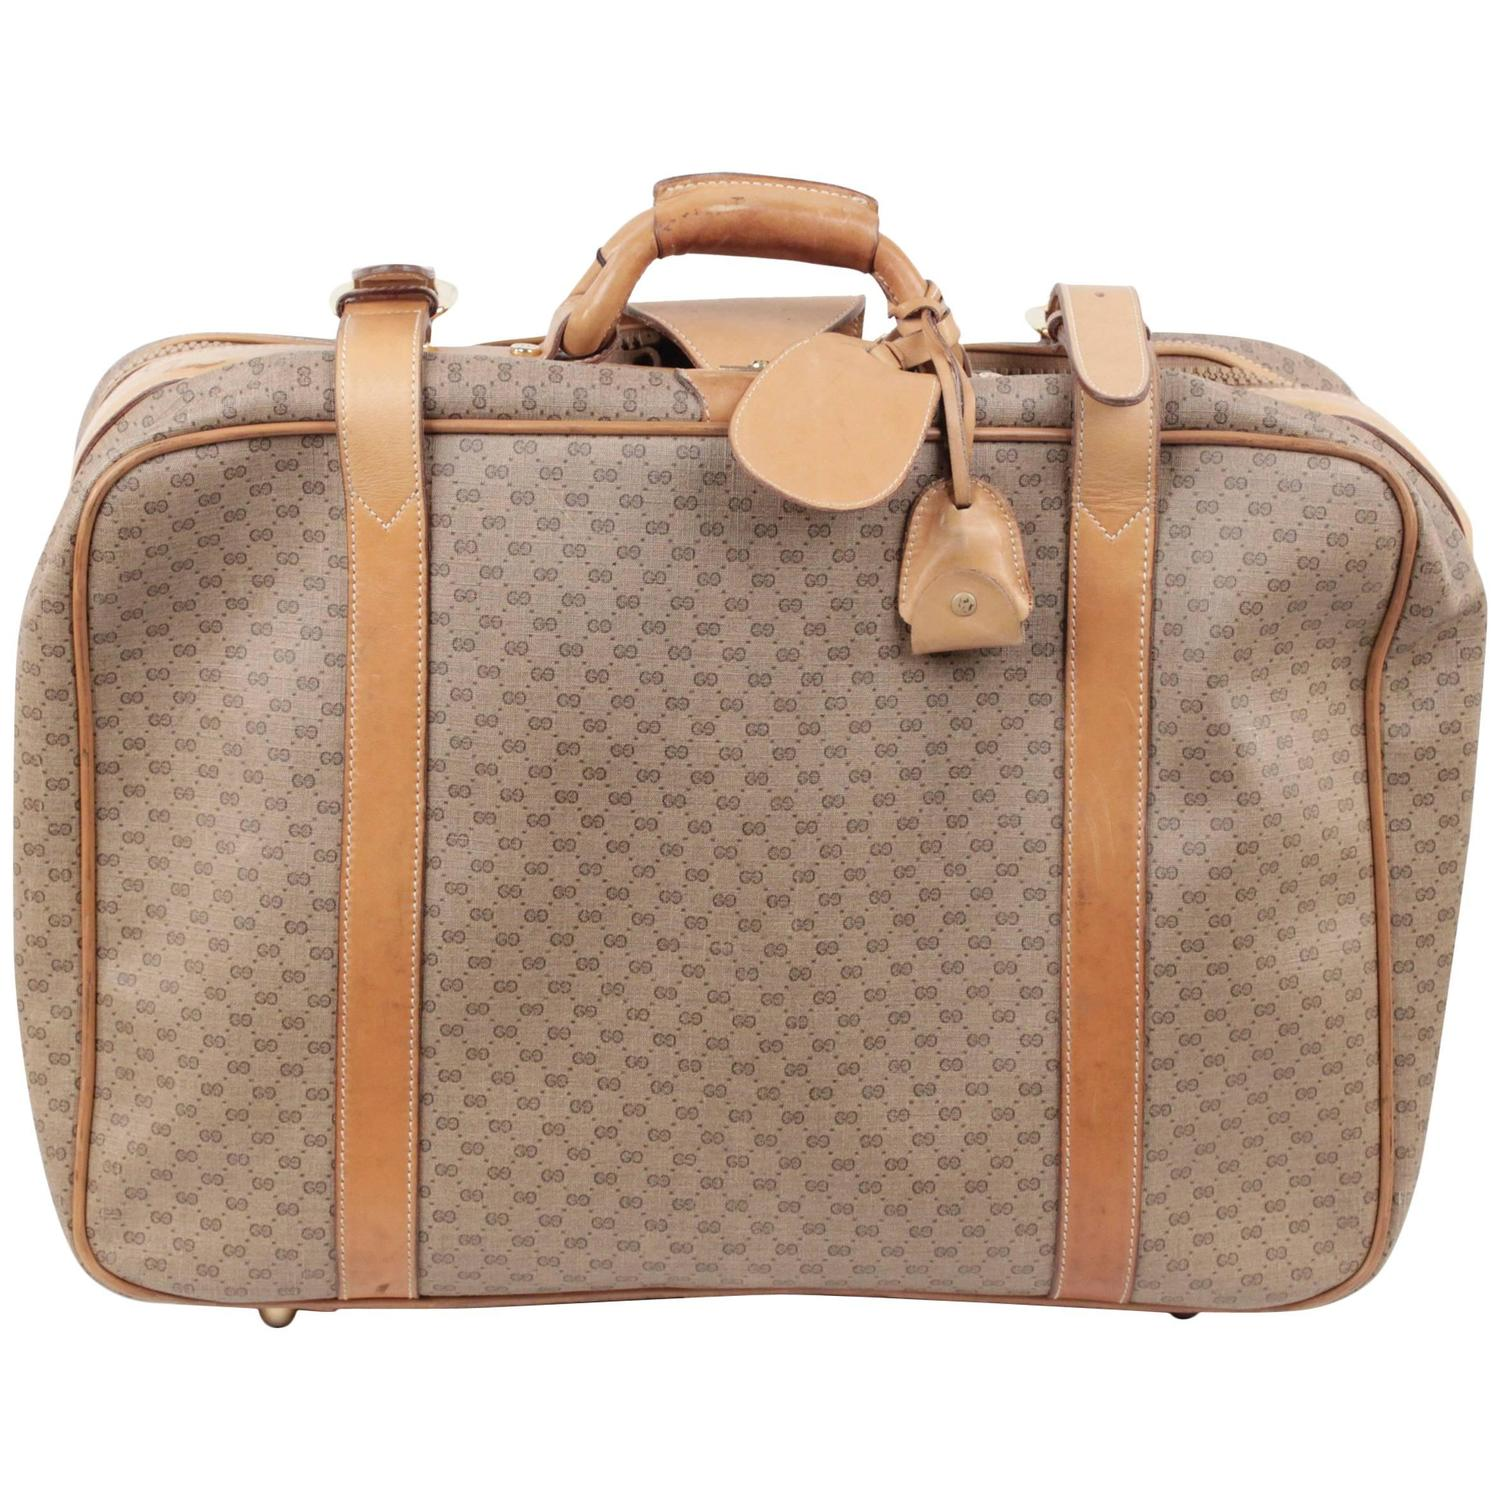 581ccee460db28 GUCCI VINTAGE Tan GG MONOGRAM Canvas CABIN SIZE SUITCASE Travel Bag For  Sale at 1stdibs